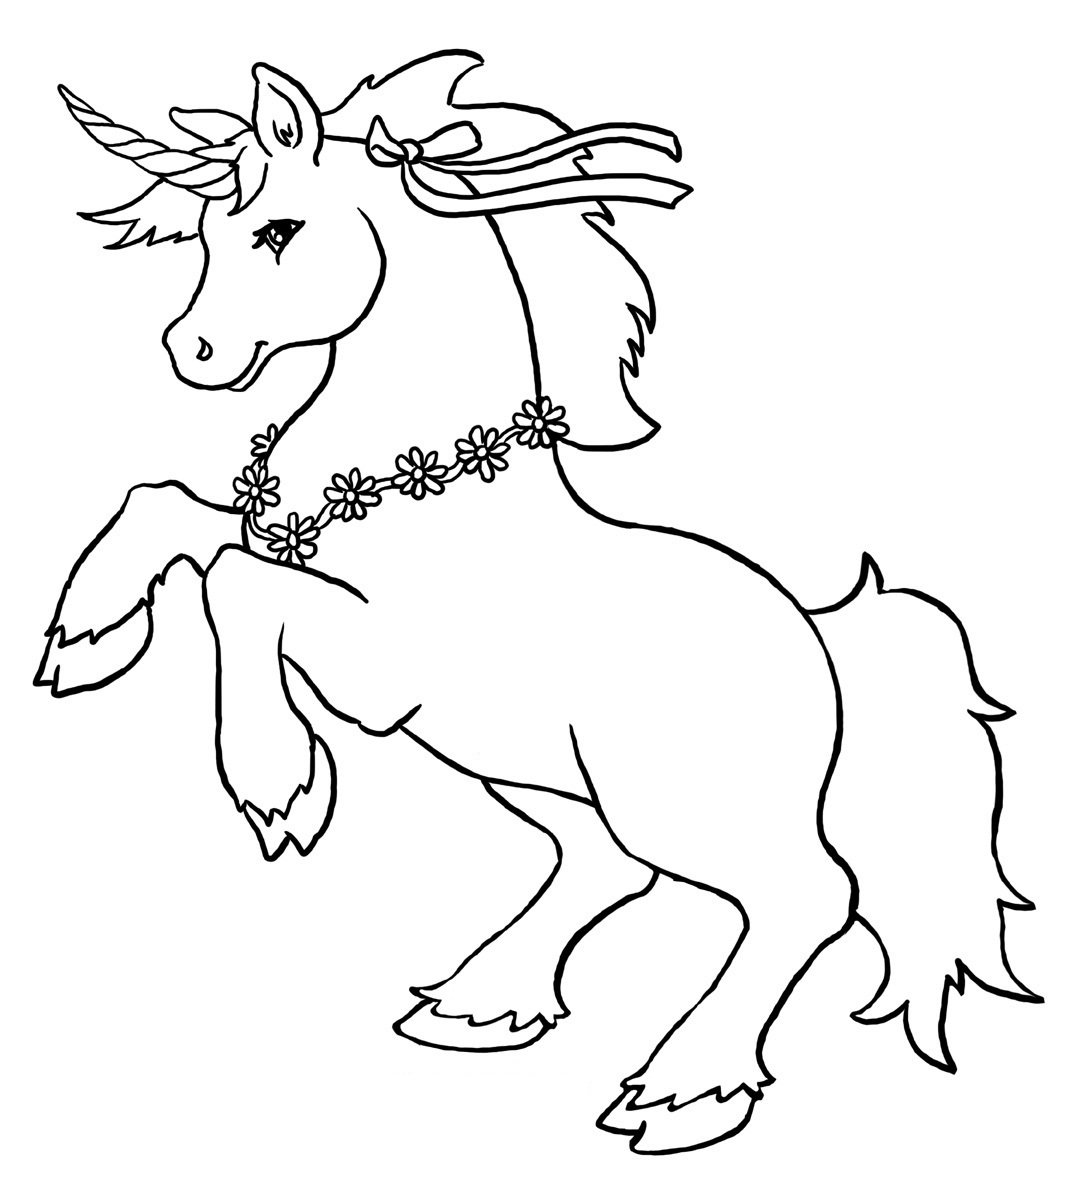 Unicorn Coloring Pages Pdf At Getdrawingscom Free For Personal